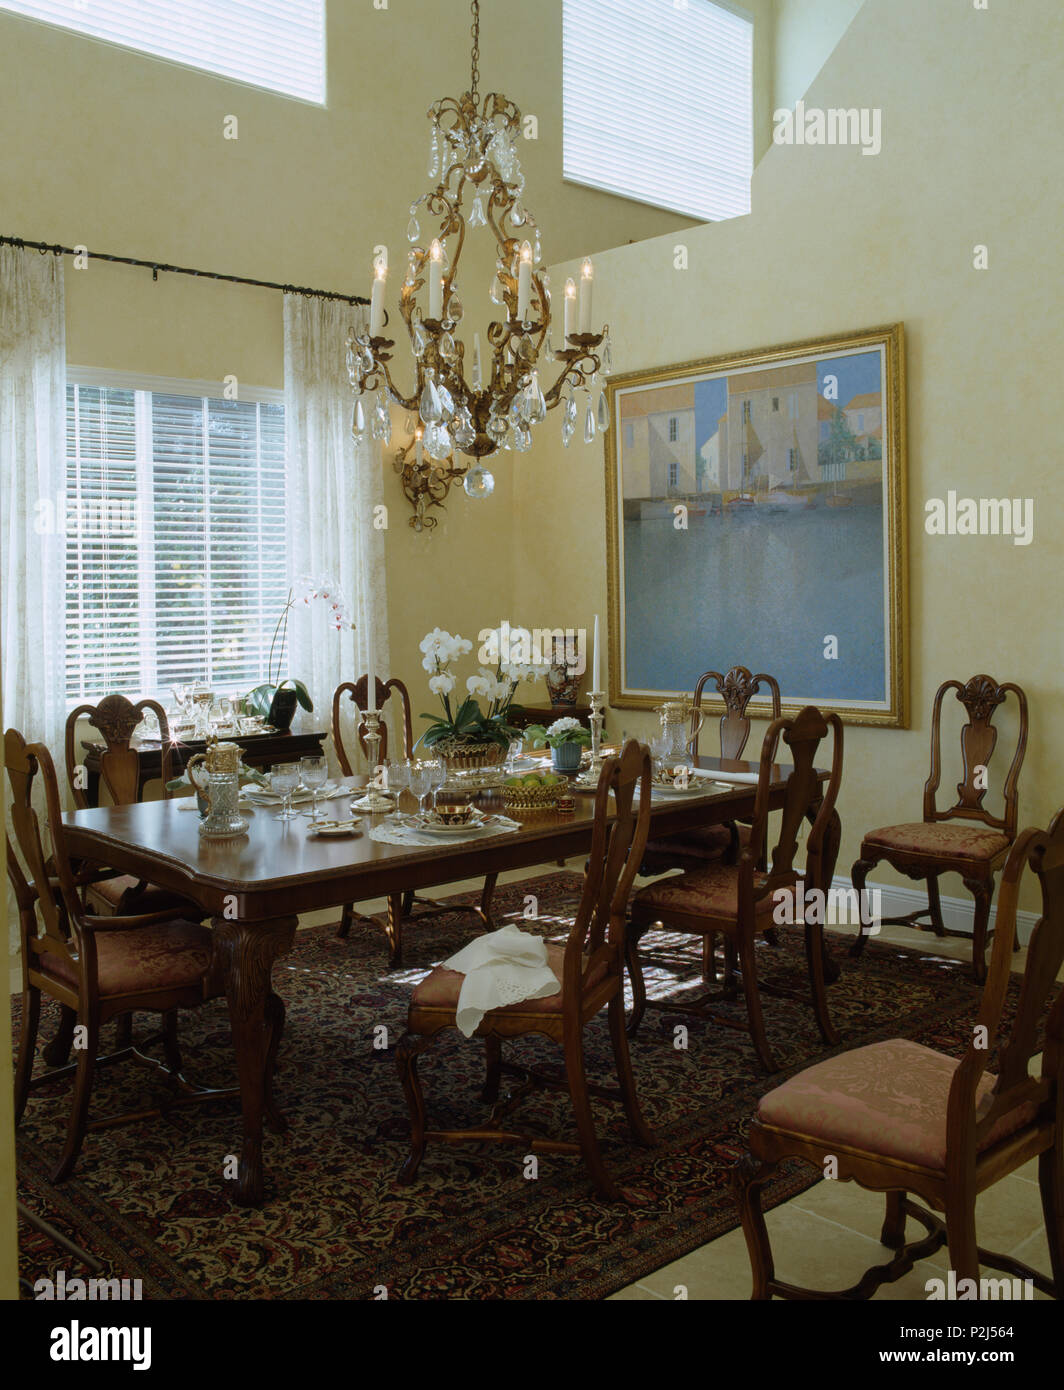 Lighted Antique Crystal Chandelier Above Mahogany Table And